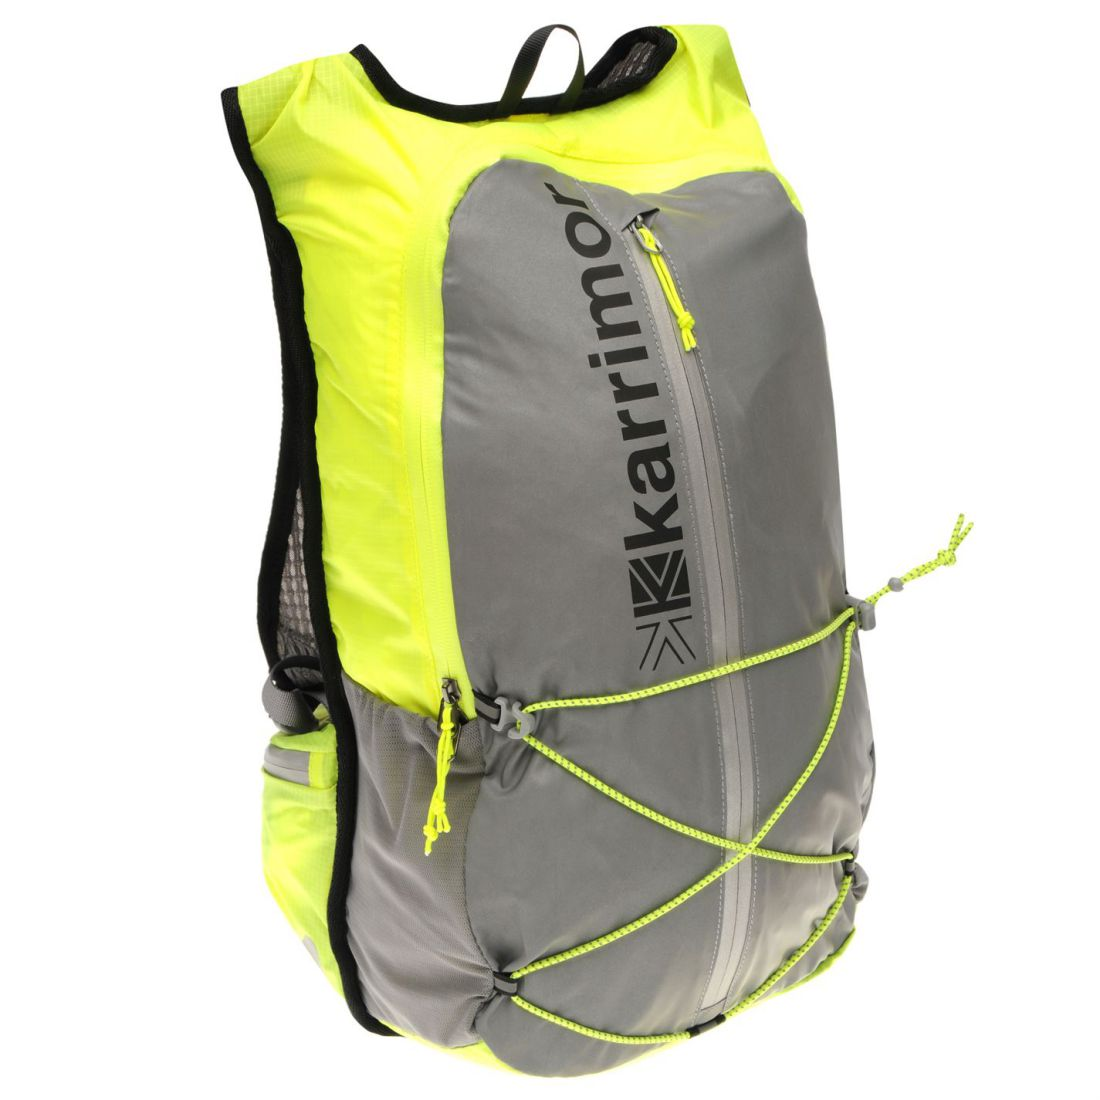 Karrimor-X-Lite-15L-Running-Back-Pack-Travel-Luggage-Everyday-Casual-Bag-New miniatura 2